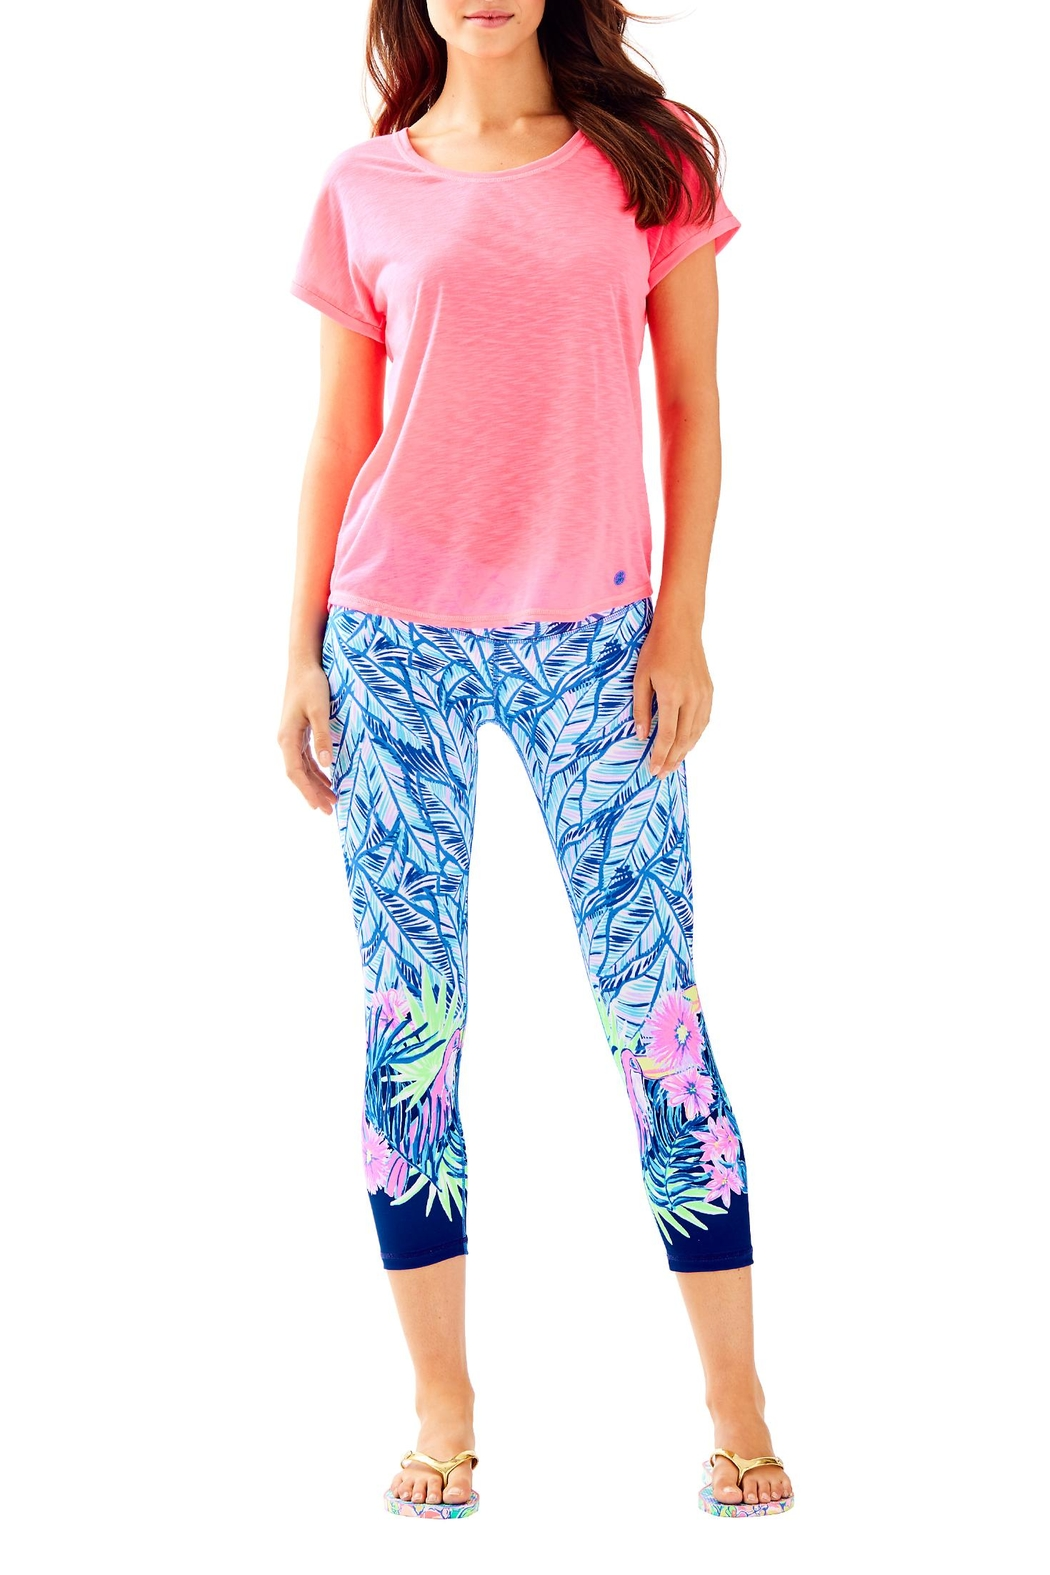 Lilly Pulitzer Luxletic Bryana Tee - Side Cropped Image